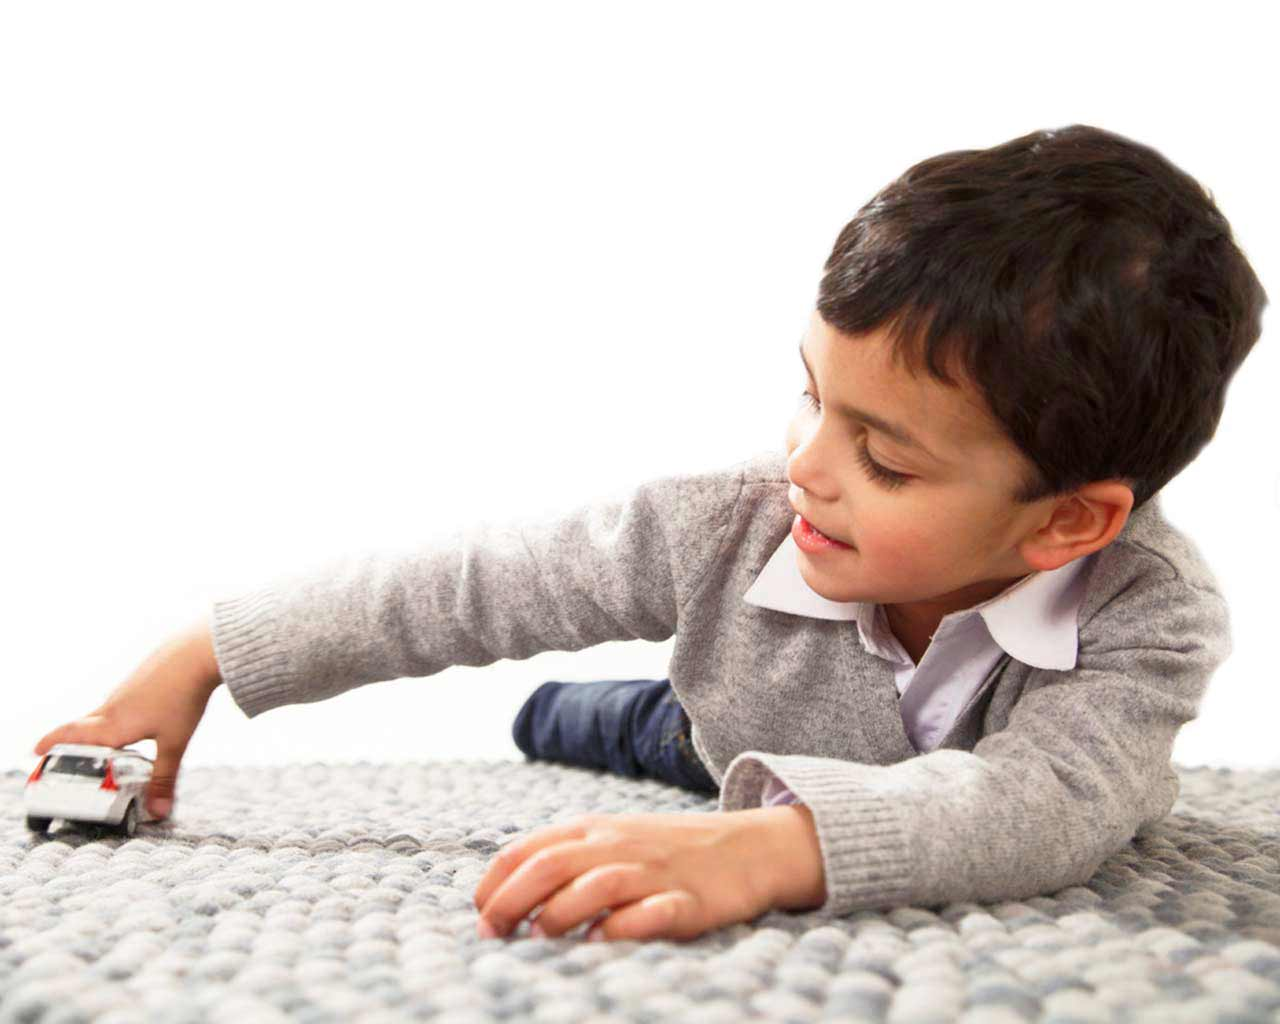 boy playing with car on grey carpet felt